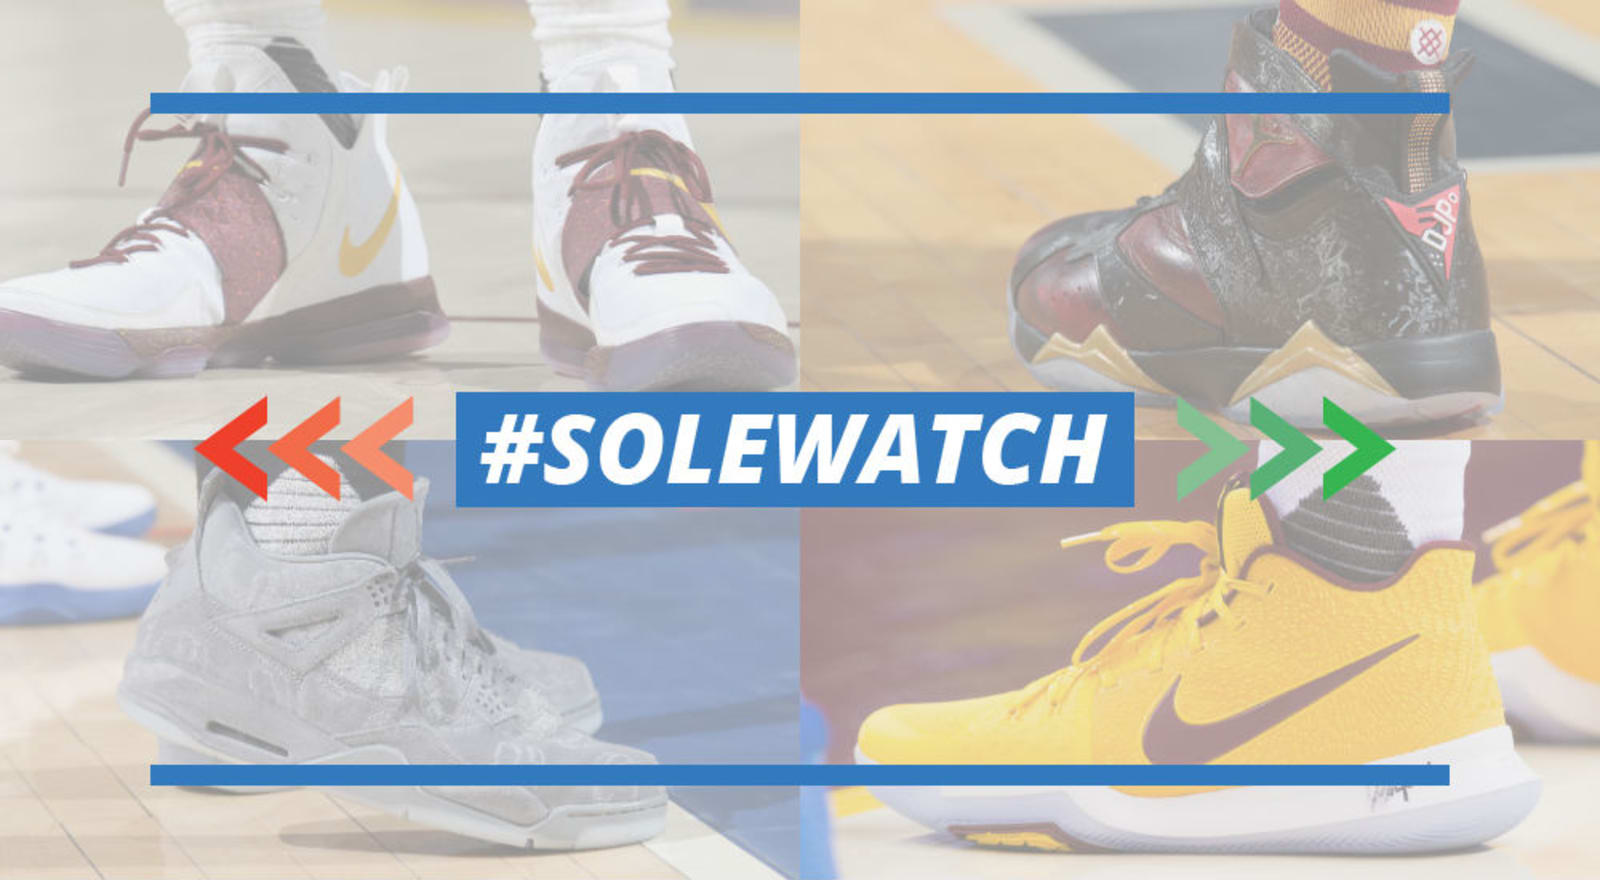 ac1bb8dccfd With the NBA season officially in its homestretch, we're ranking the best  sneakers worn in the league one last time before the finale. P.J. Tucker ...